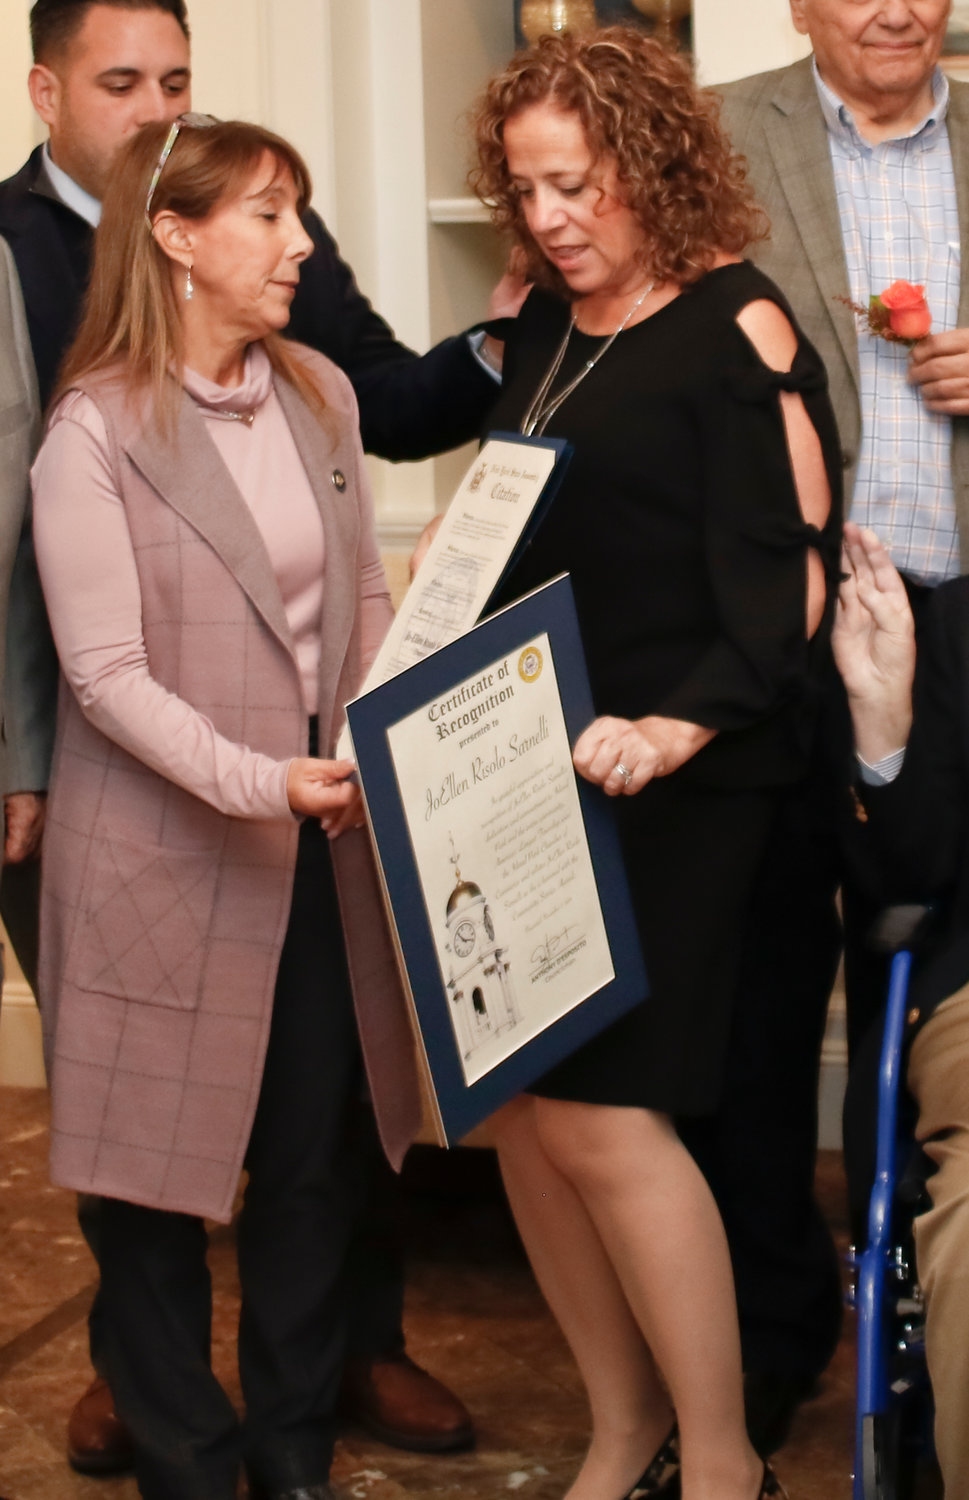 Jo-Ellen Risolo Sarnelli, right, was congratulated by State Assemblywoman Melissa Miller after receiving the Community Service Award.